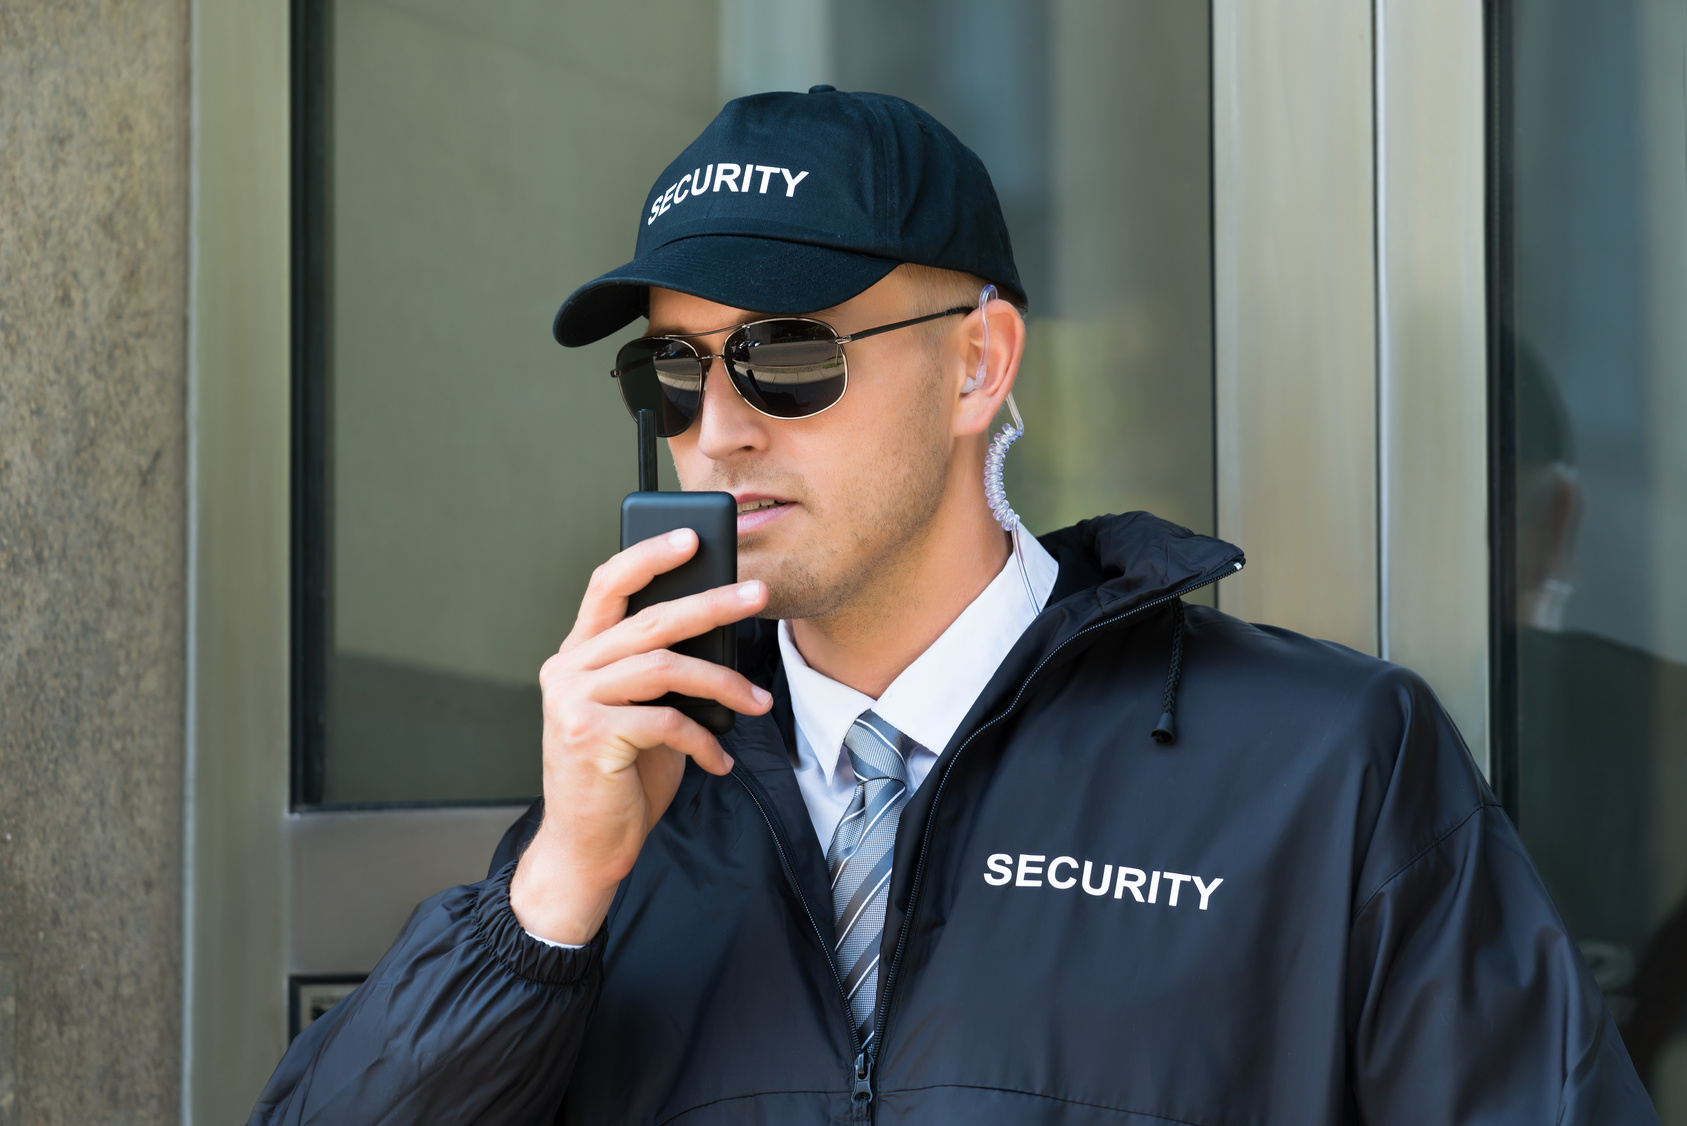 Portrait Of Young Security Guard Using Walkie-talkie Radio